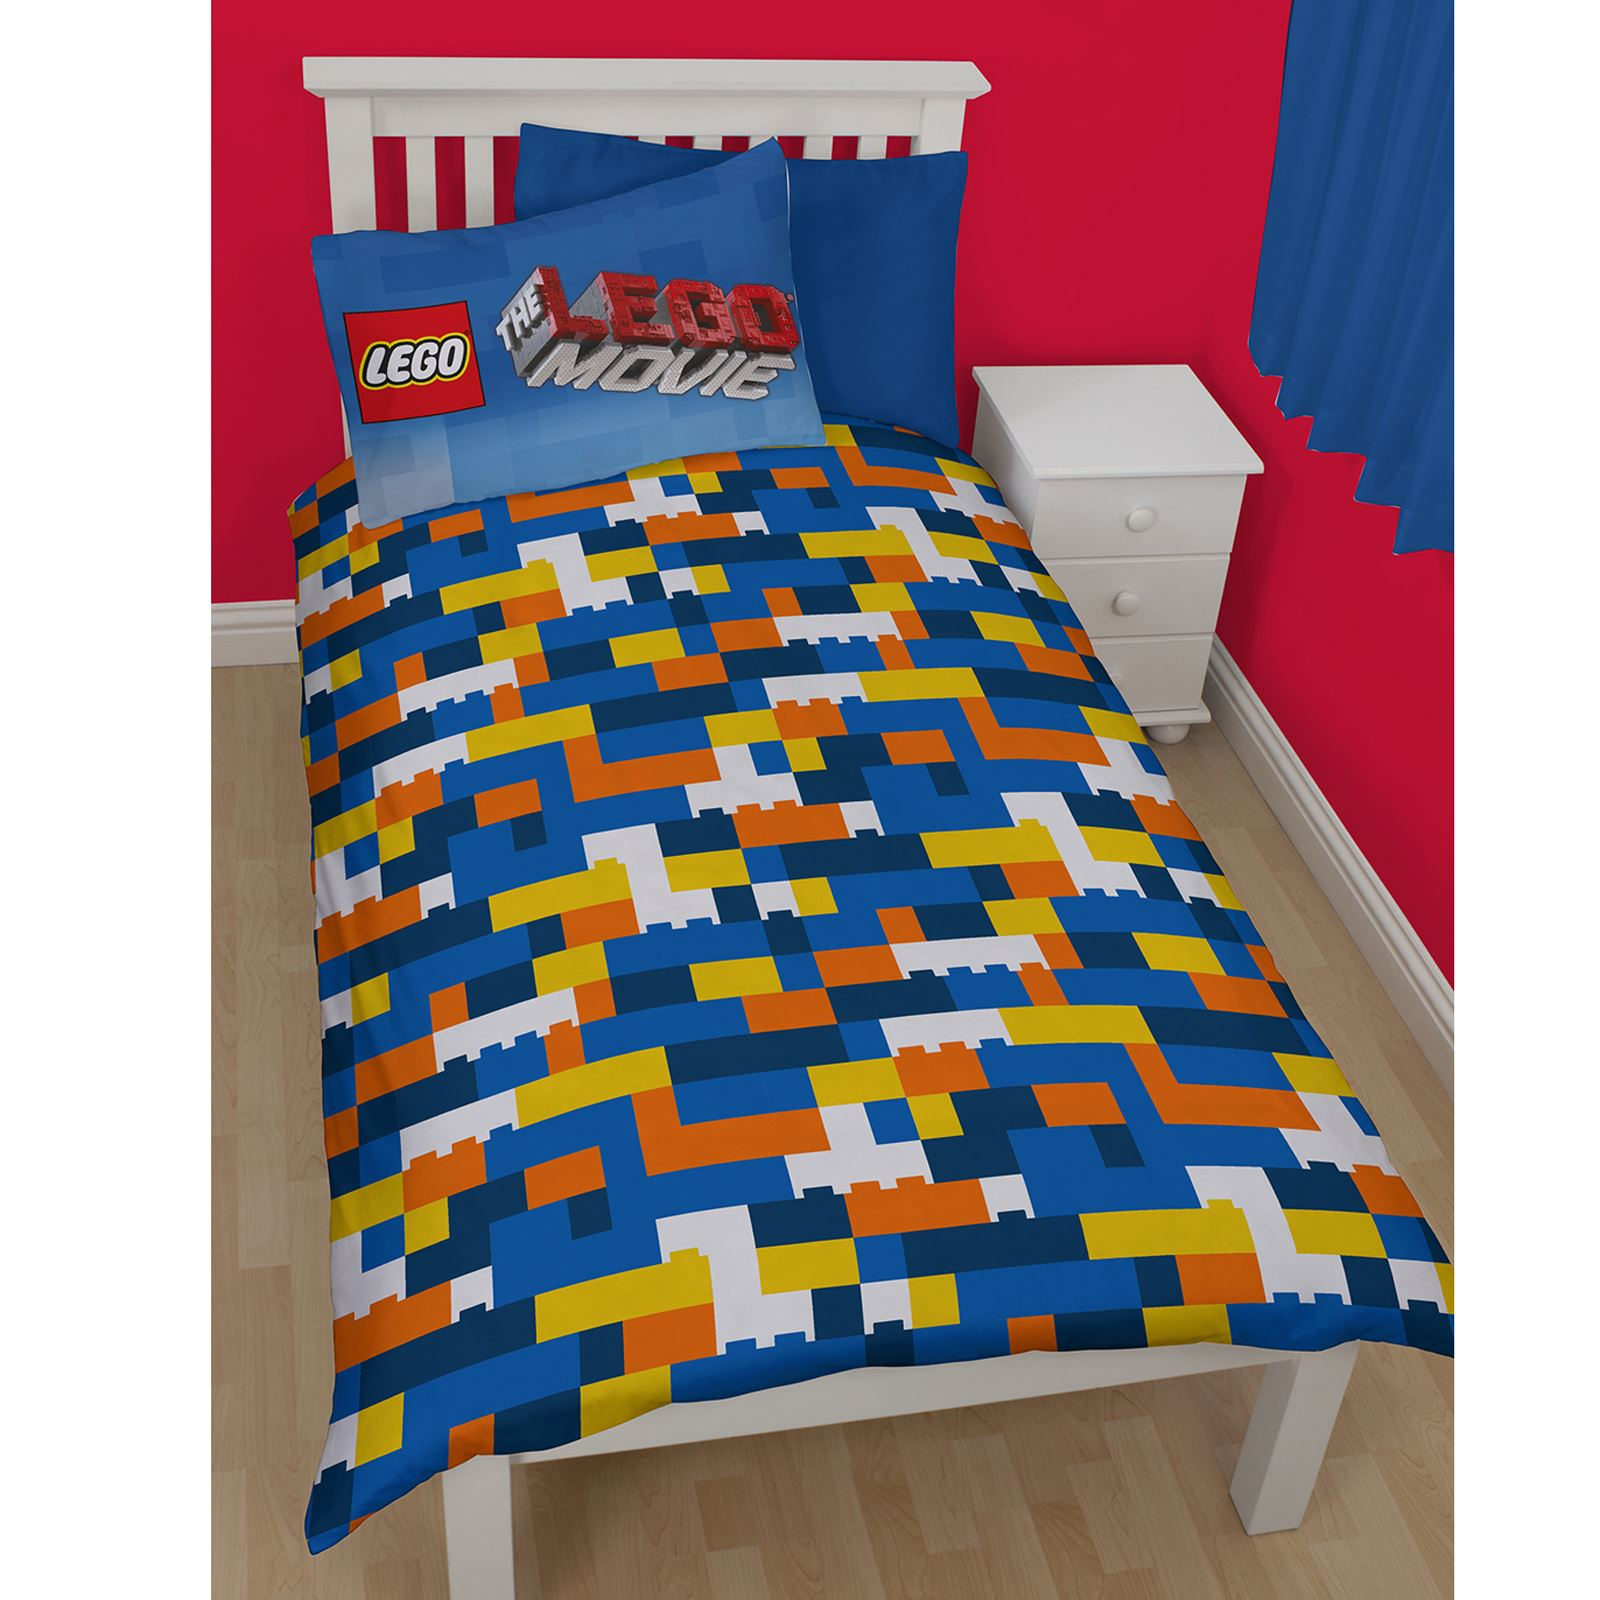 ficial lego einzeln stepp bettdecke abdeckungen stadt film ninjago ebay. Black Bedroom Furniture Sets. Home Design Ideas